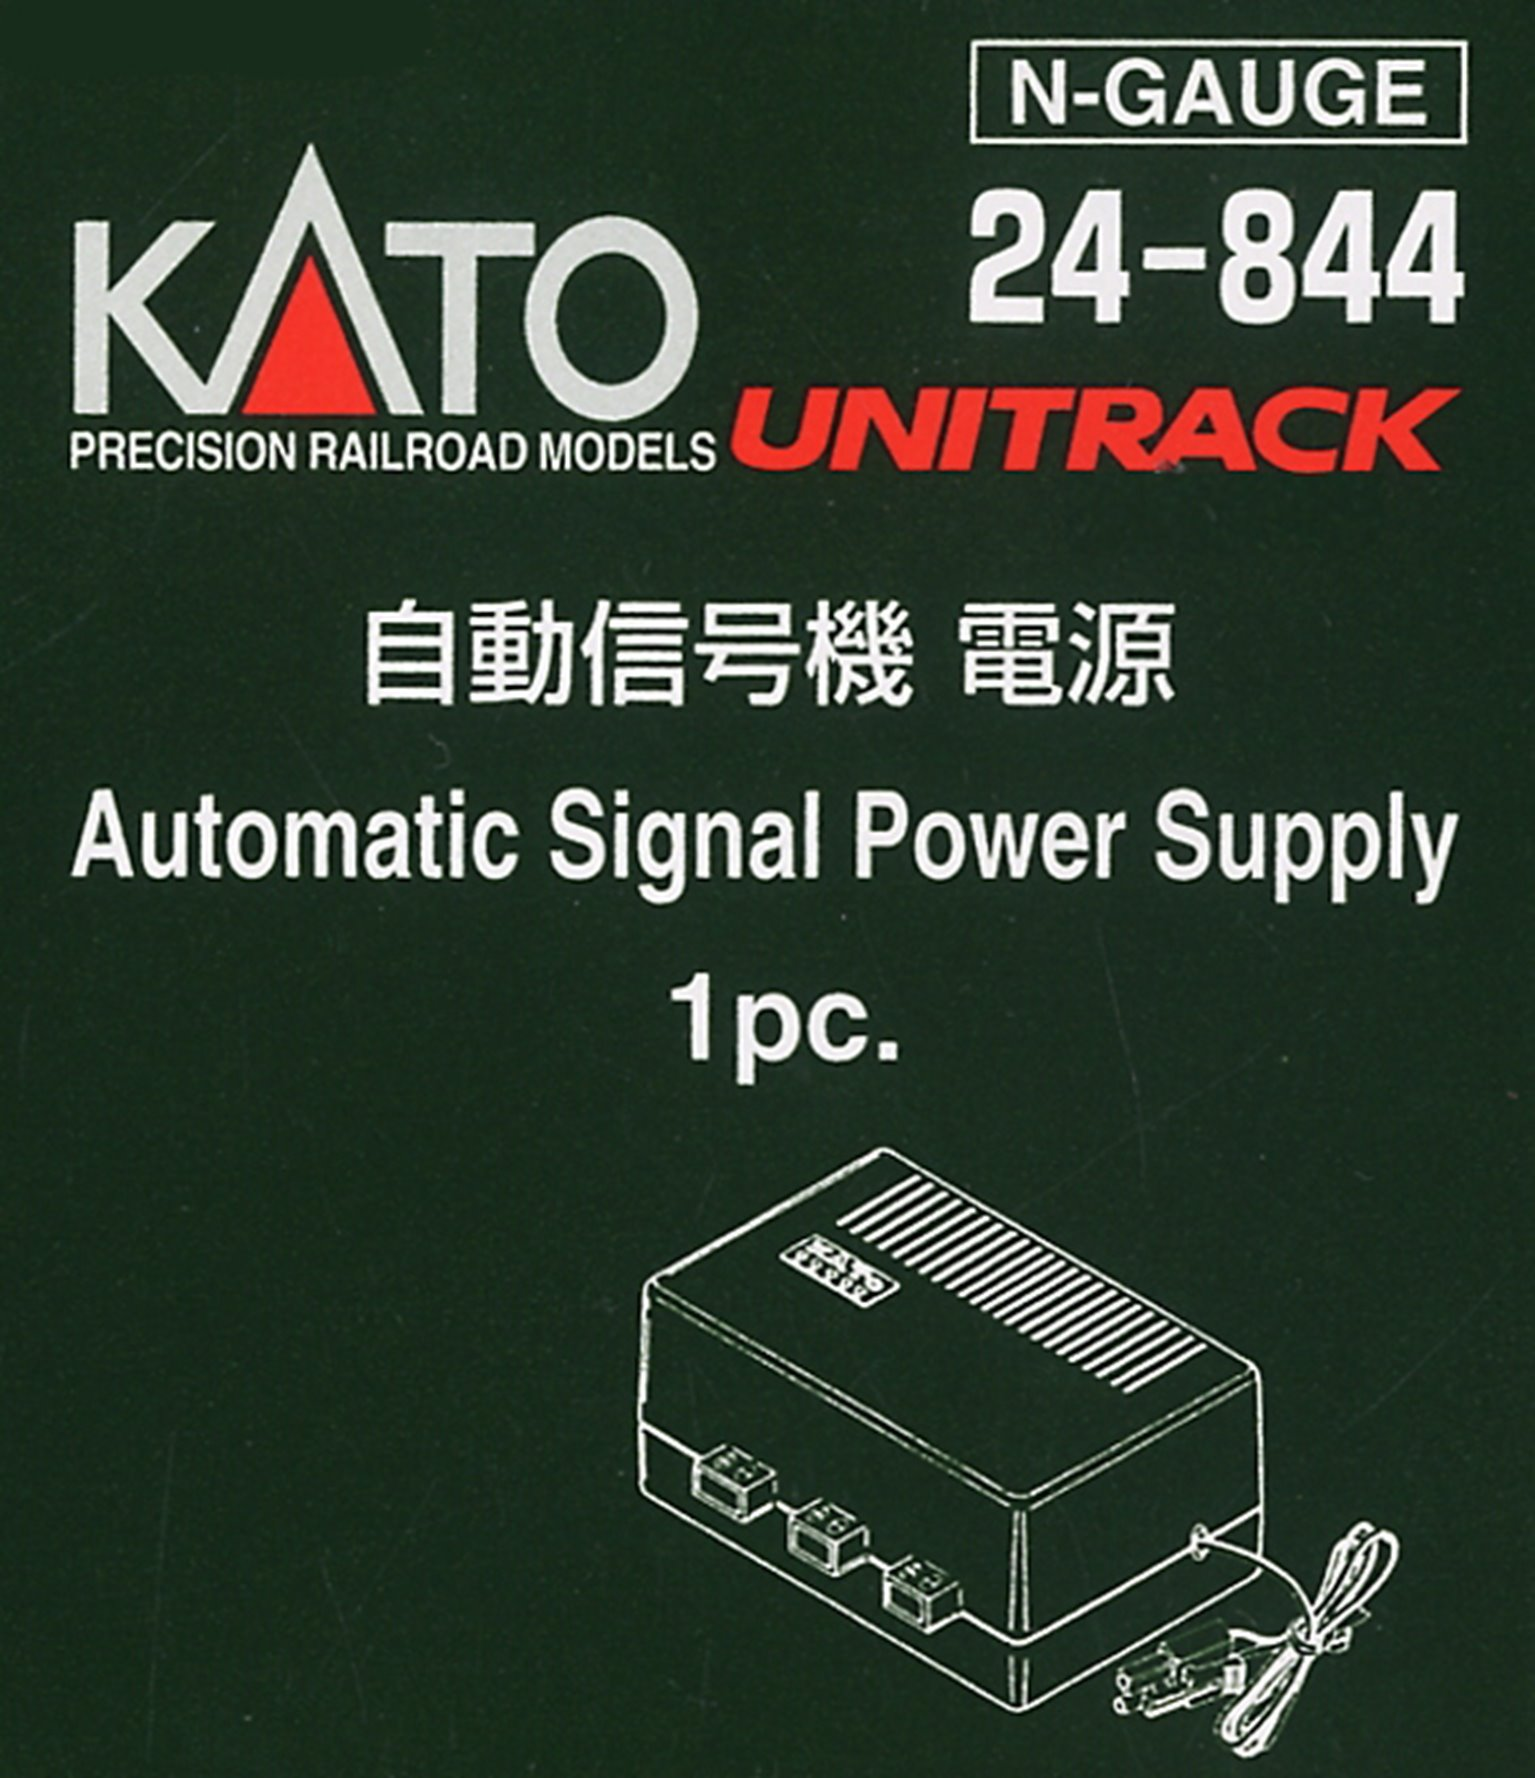 Kato 24-844 Automated Signal Power Supply